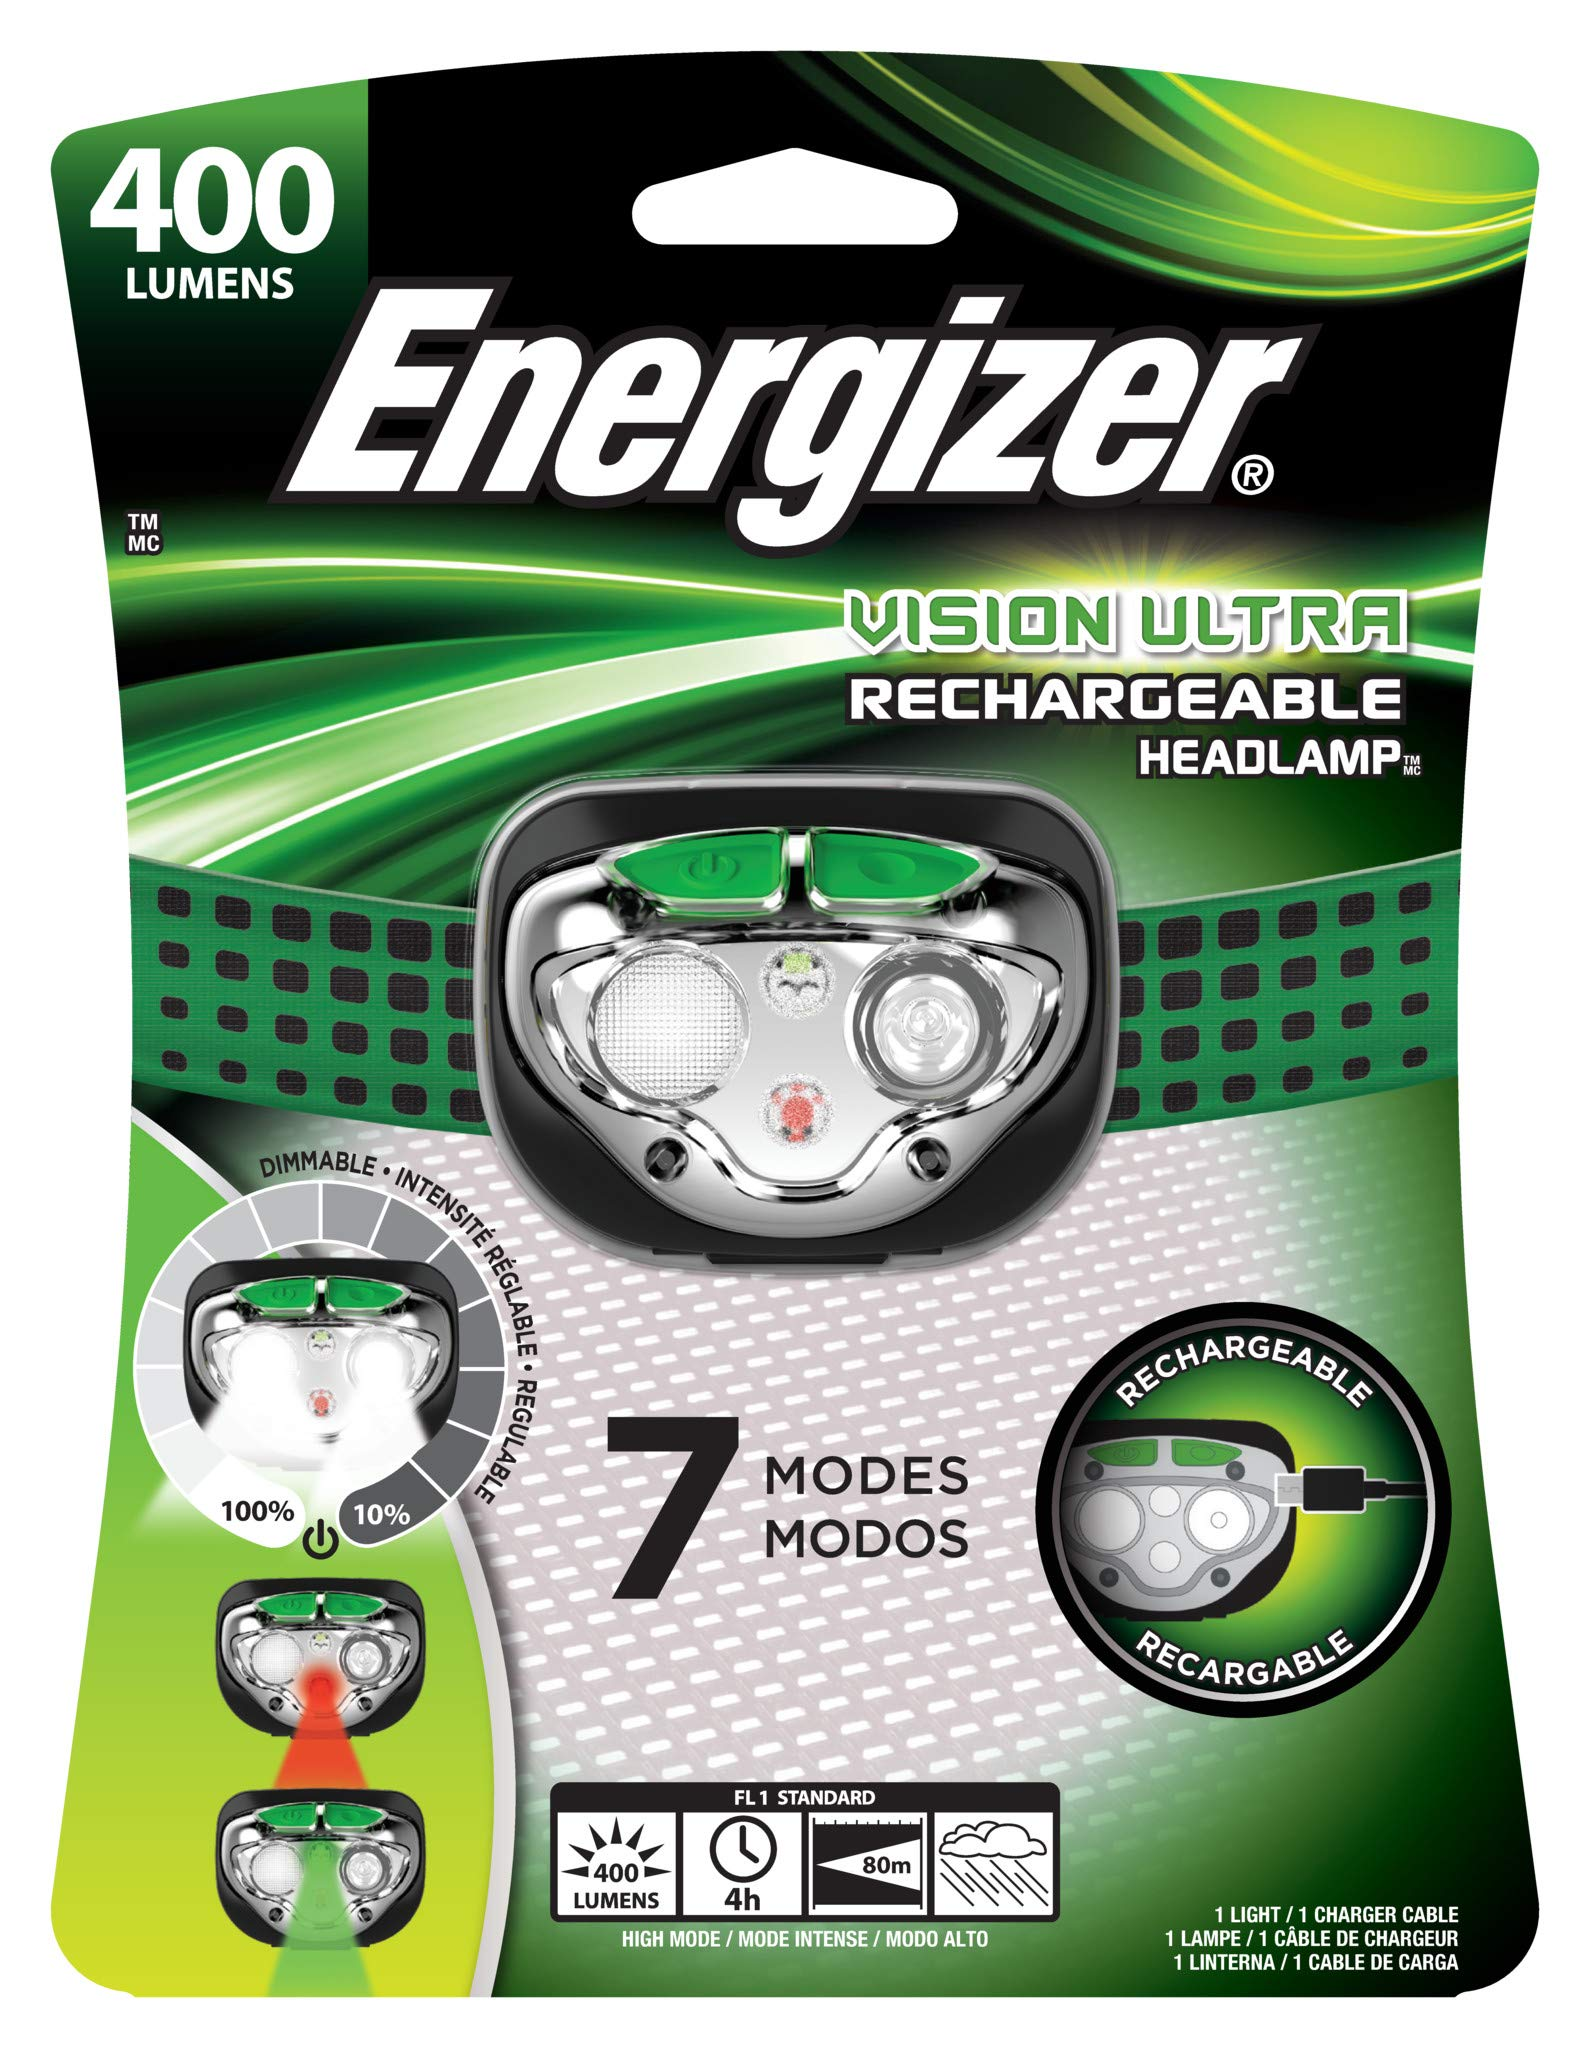 Energizer Vision Ultra Rechargeable Headlamp, 6 Modes by Energizer (Image #3)